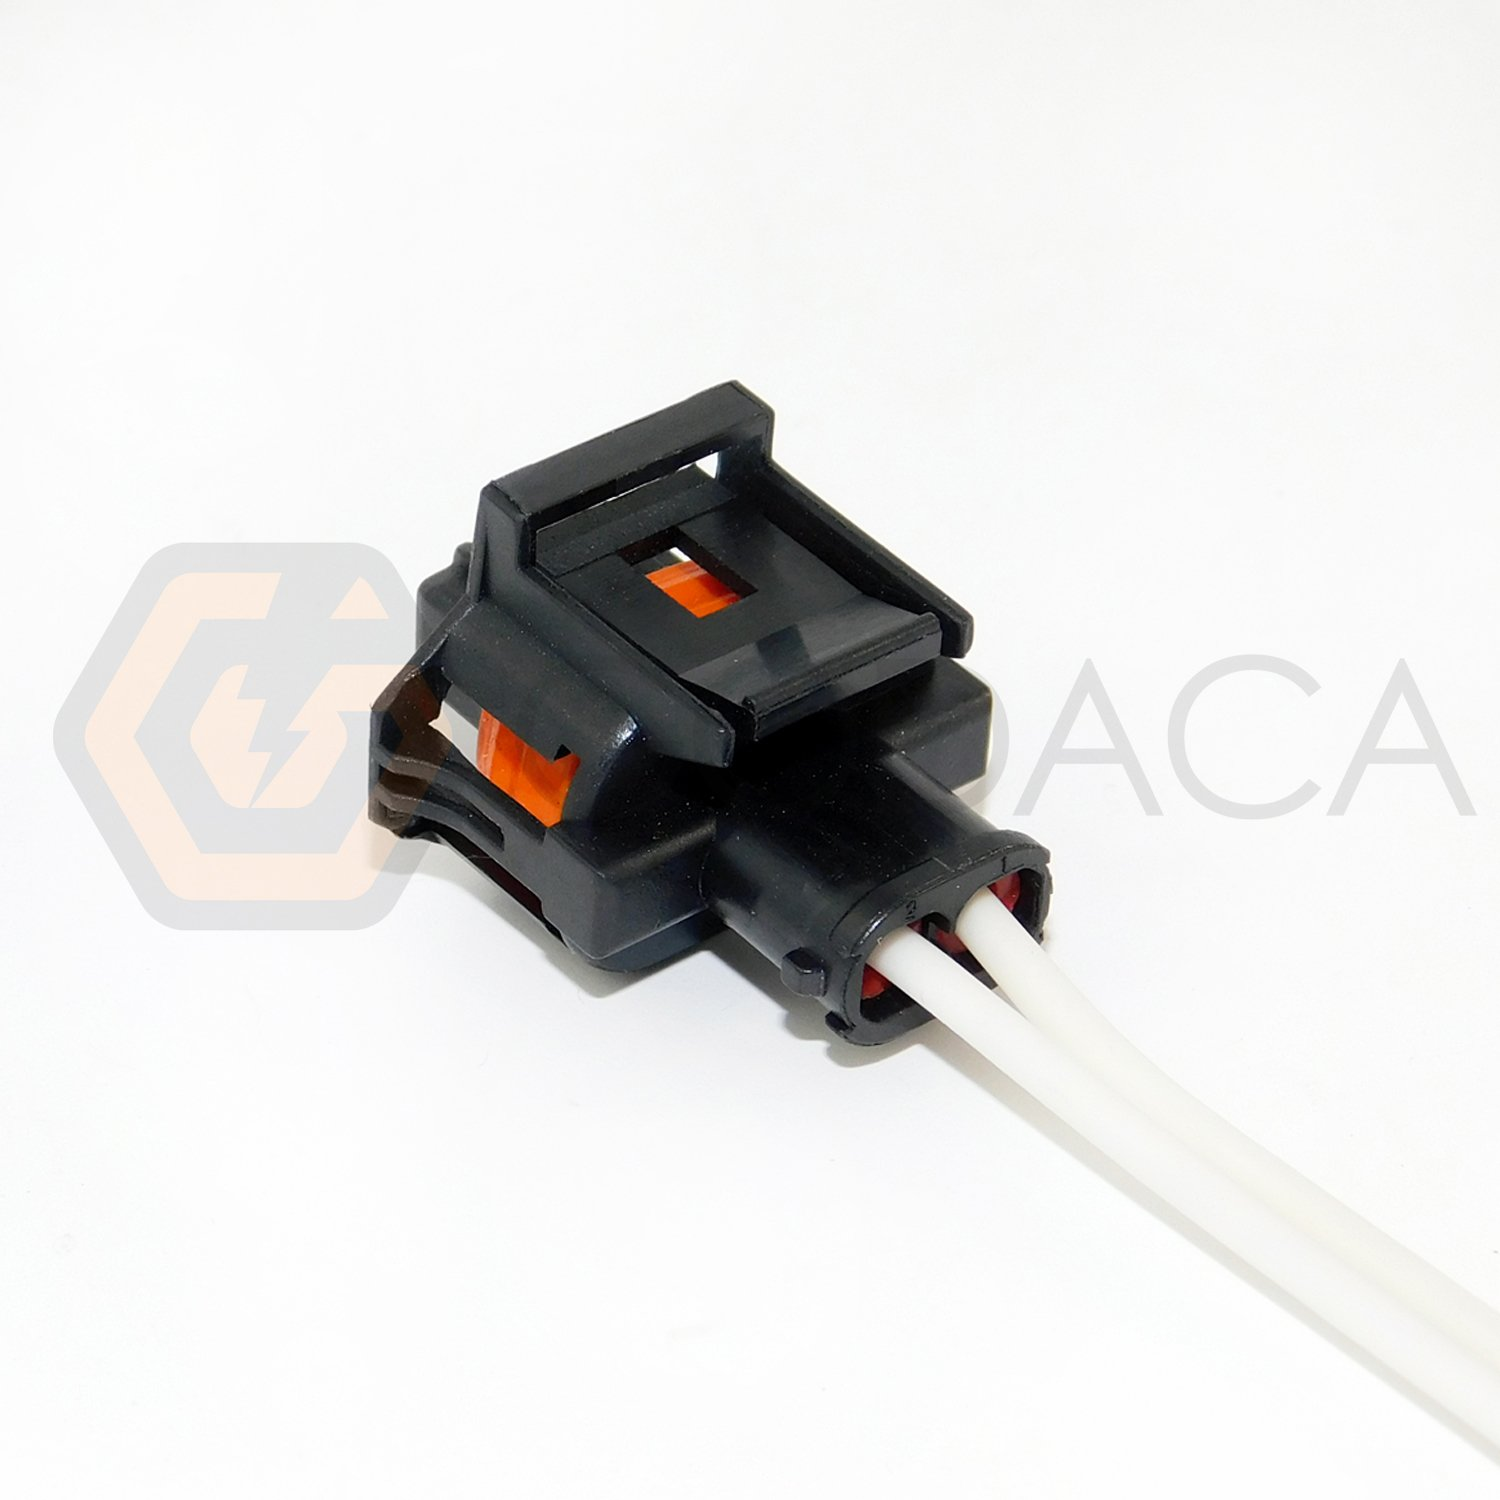 Amazon.com: Fuel Injector Connector 6.6l for Duramax LLY LBZ 2 Wire Pigtail  Diesel: Automotive